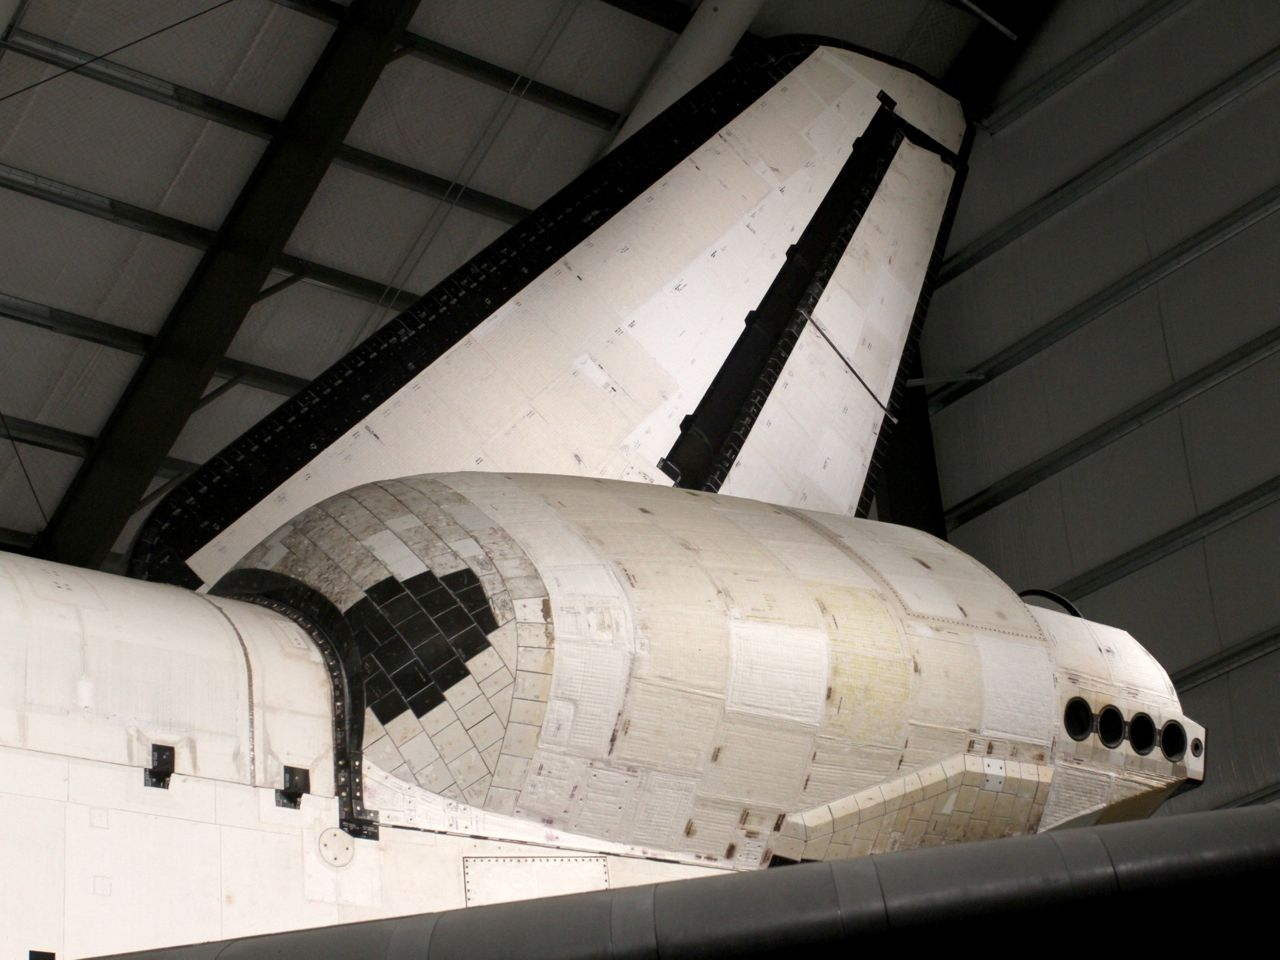 space shuttle oms - photo #4